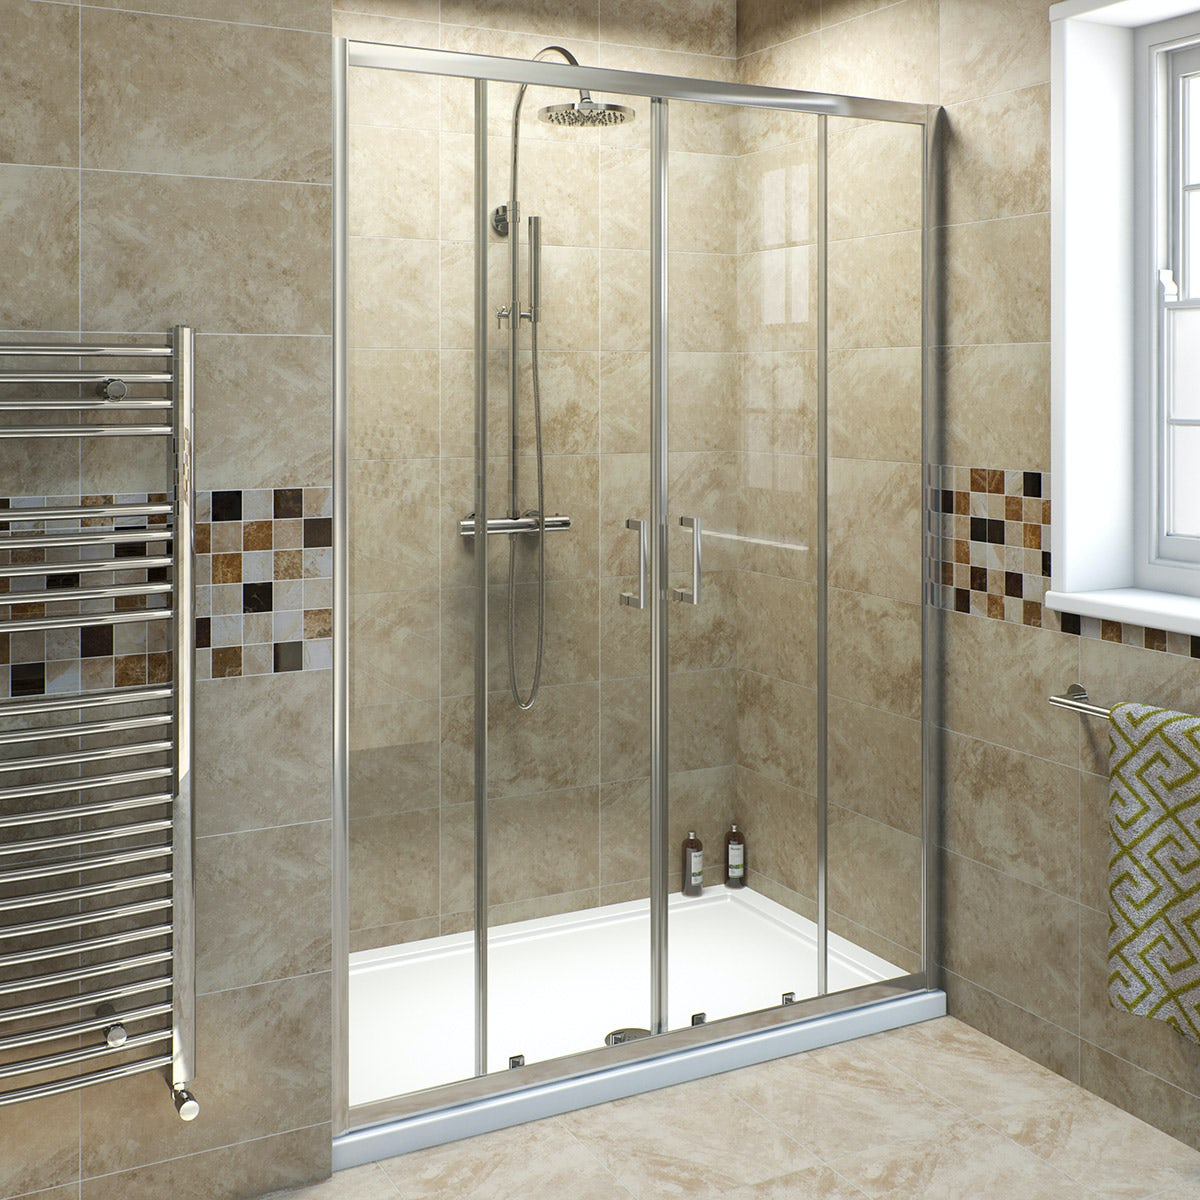 6mm double sliding shower door 1400mm Sliding glass shower doors